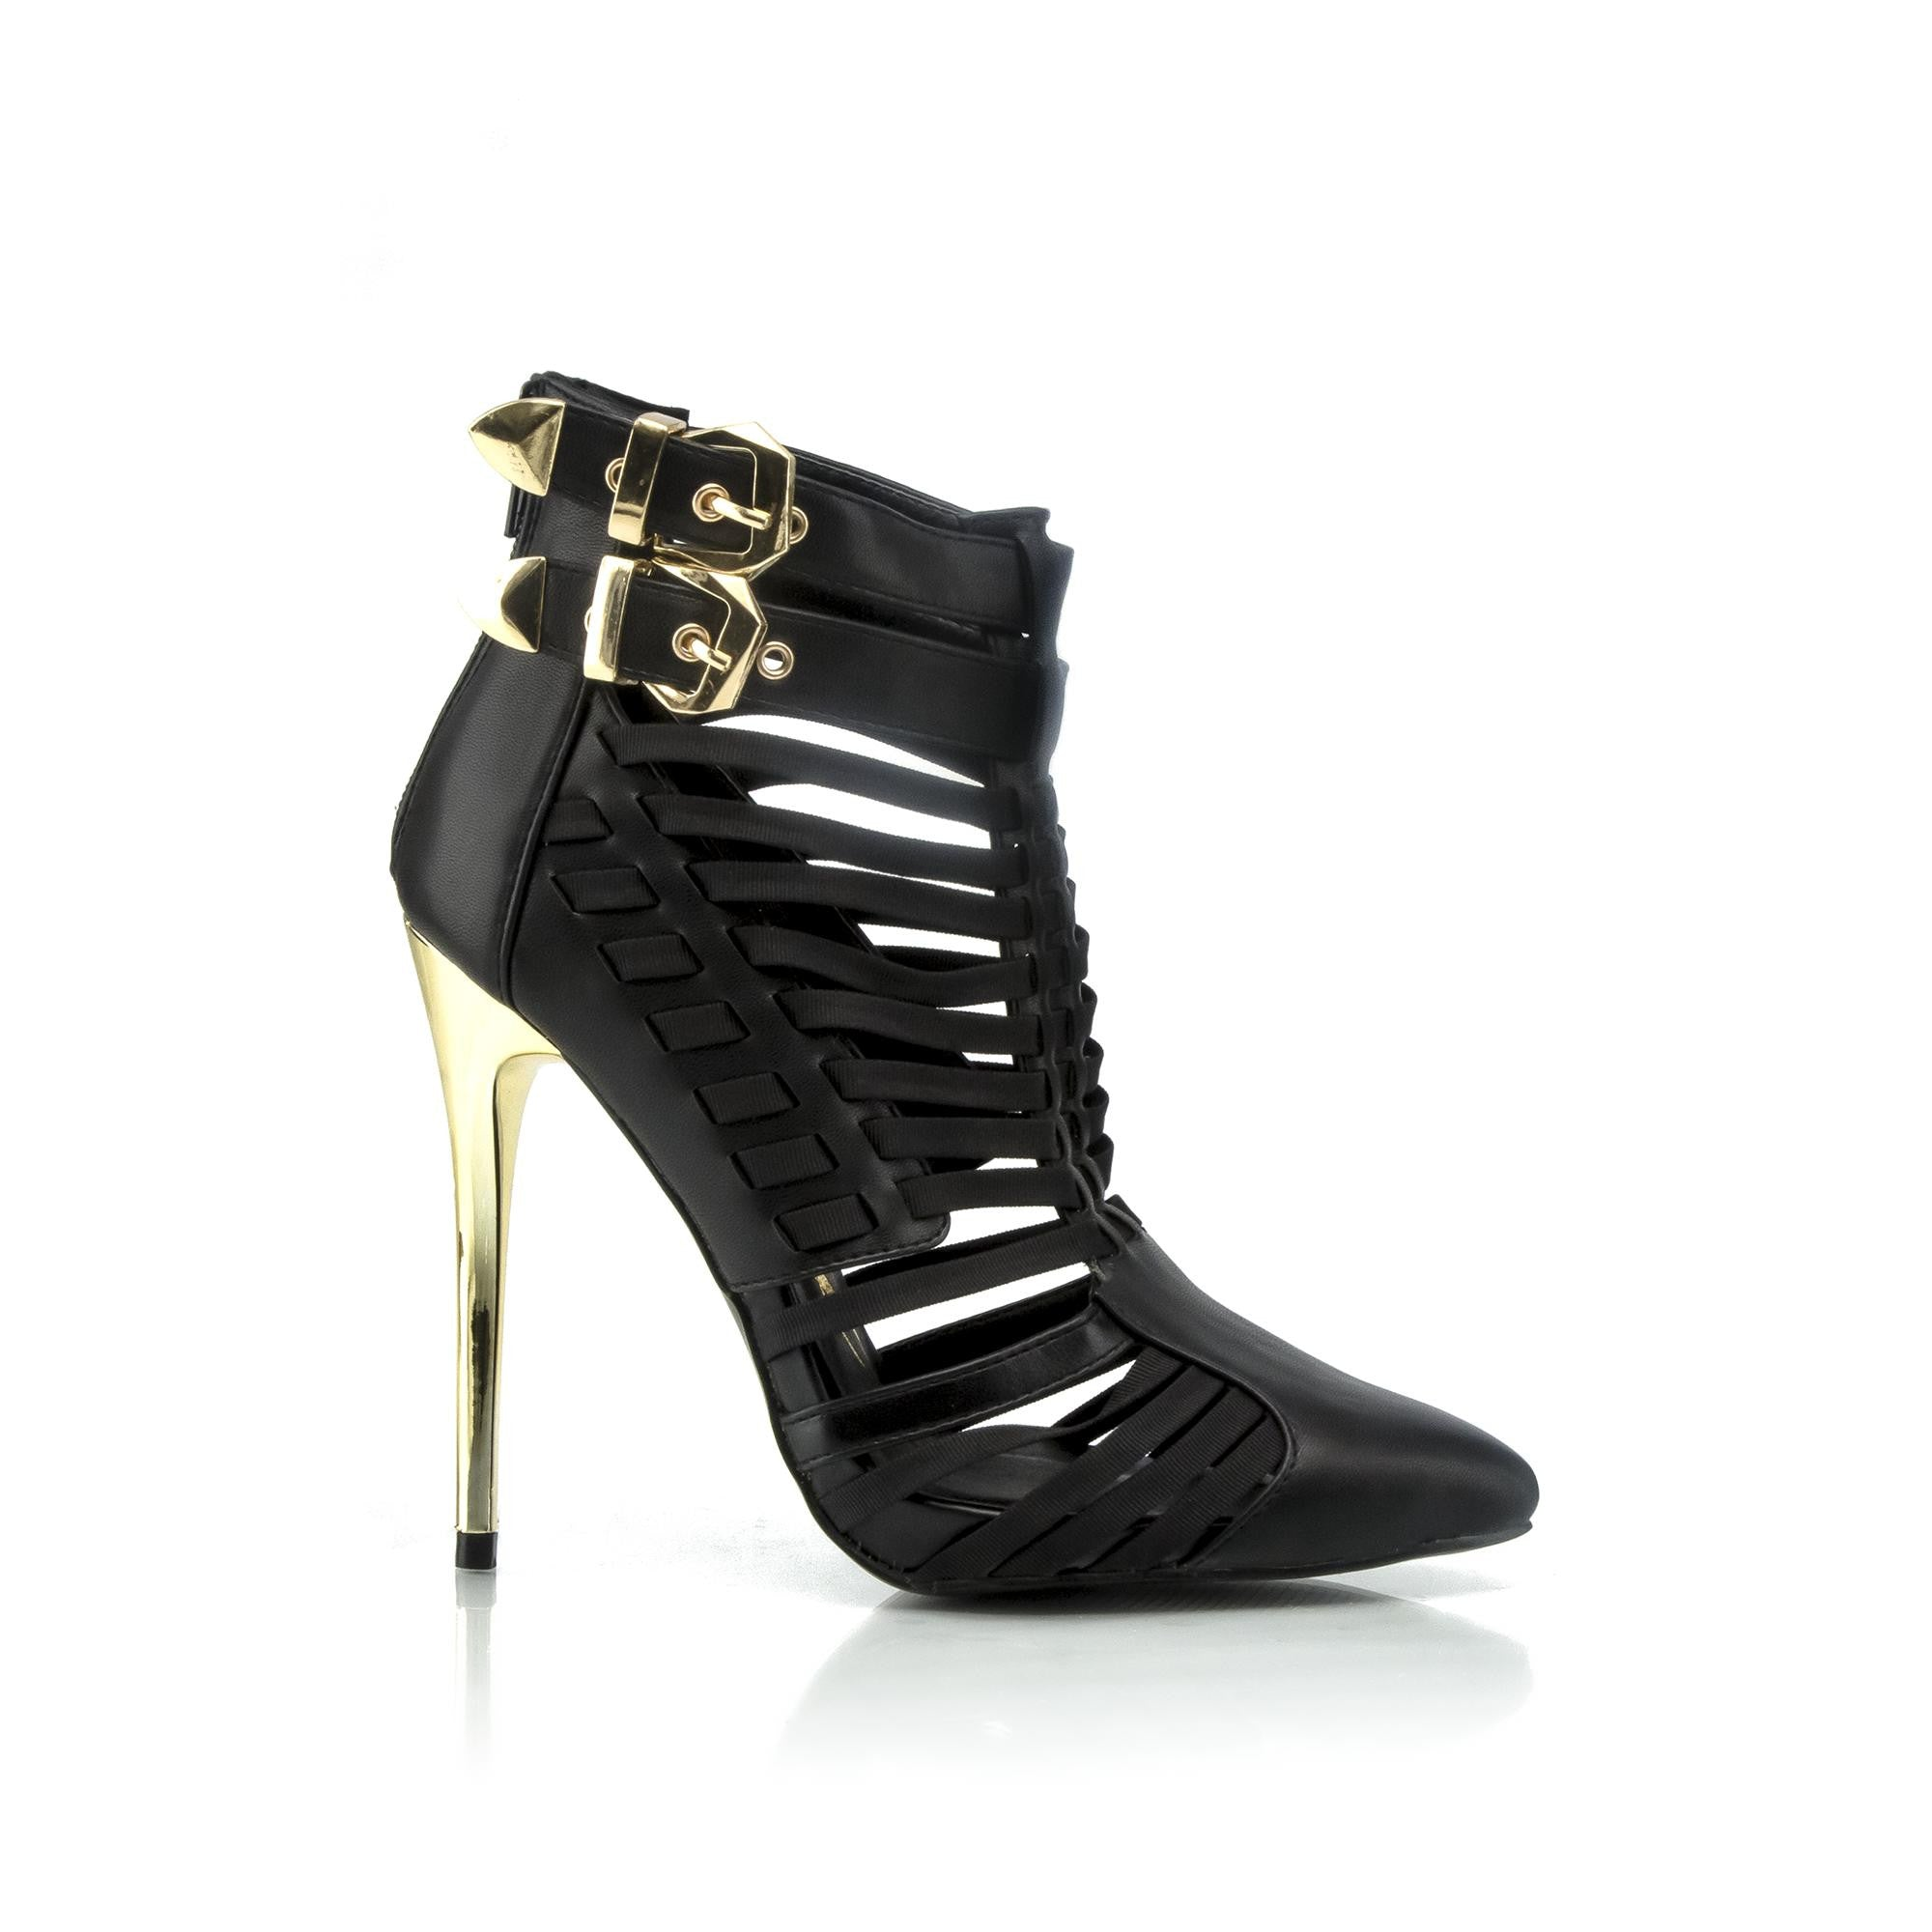 MAGNETIC Strappy Heels